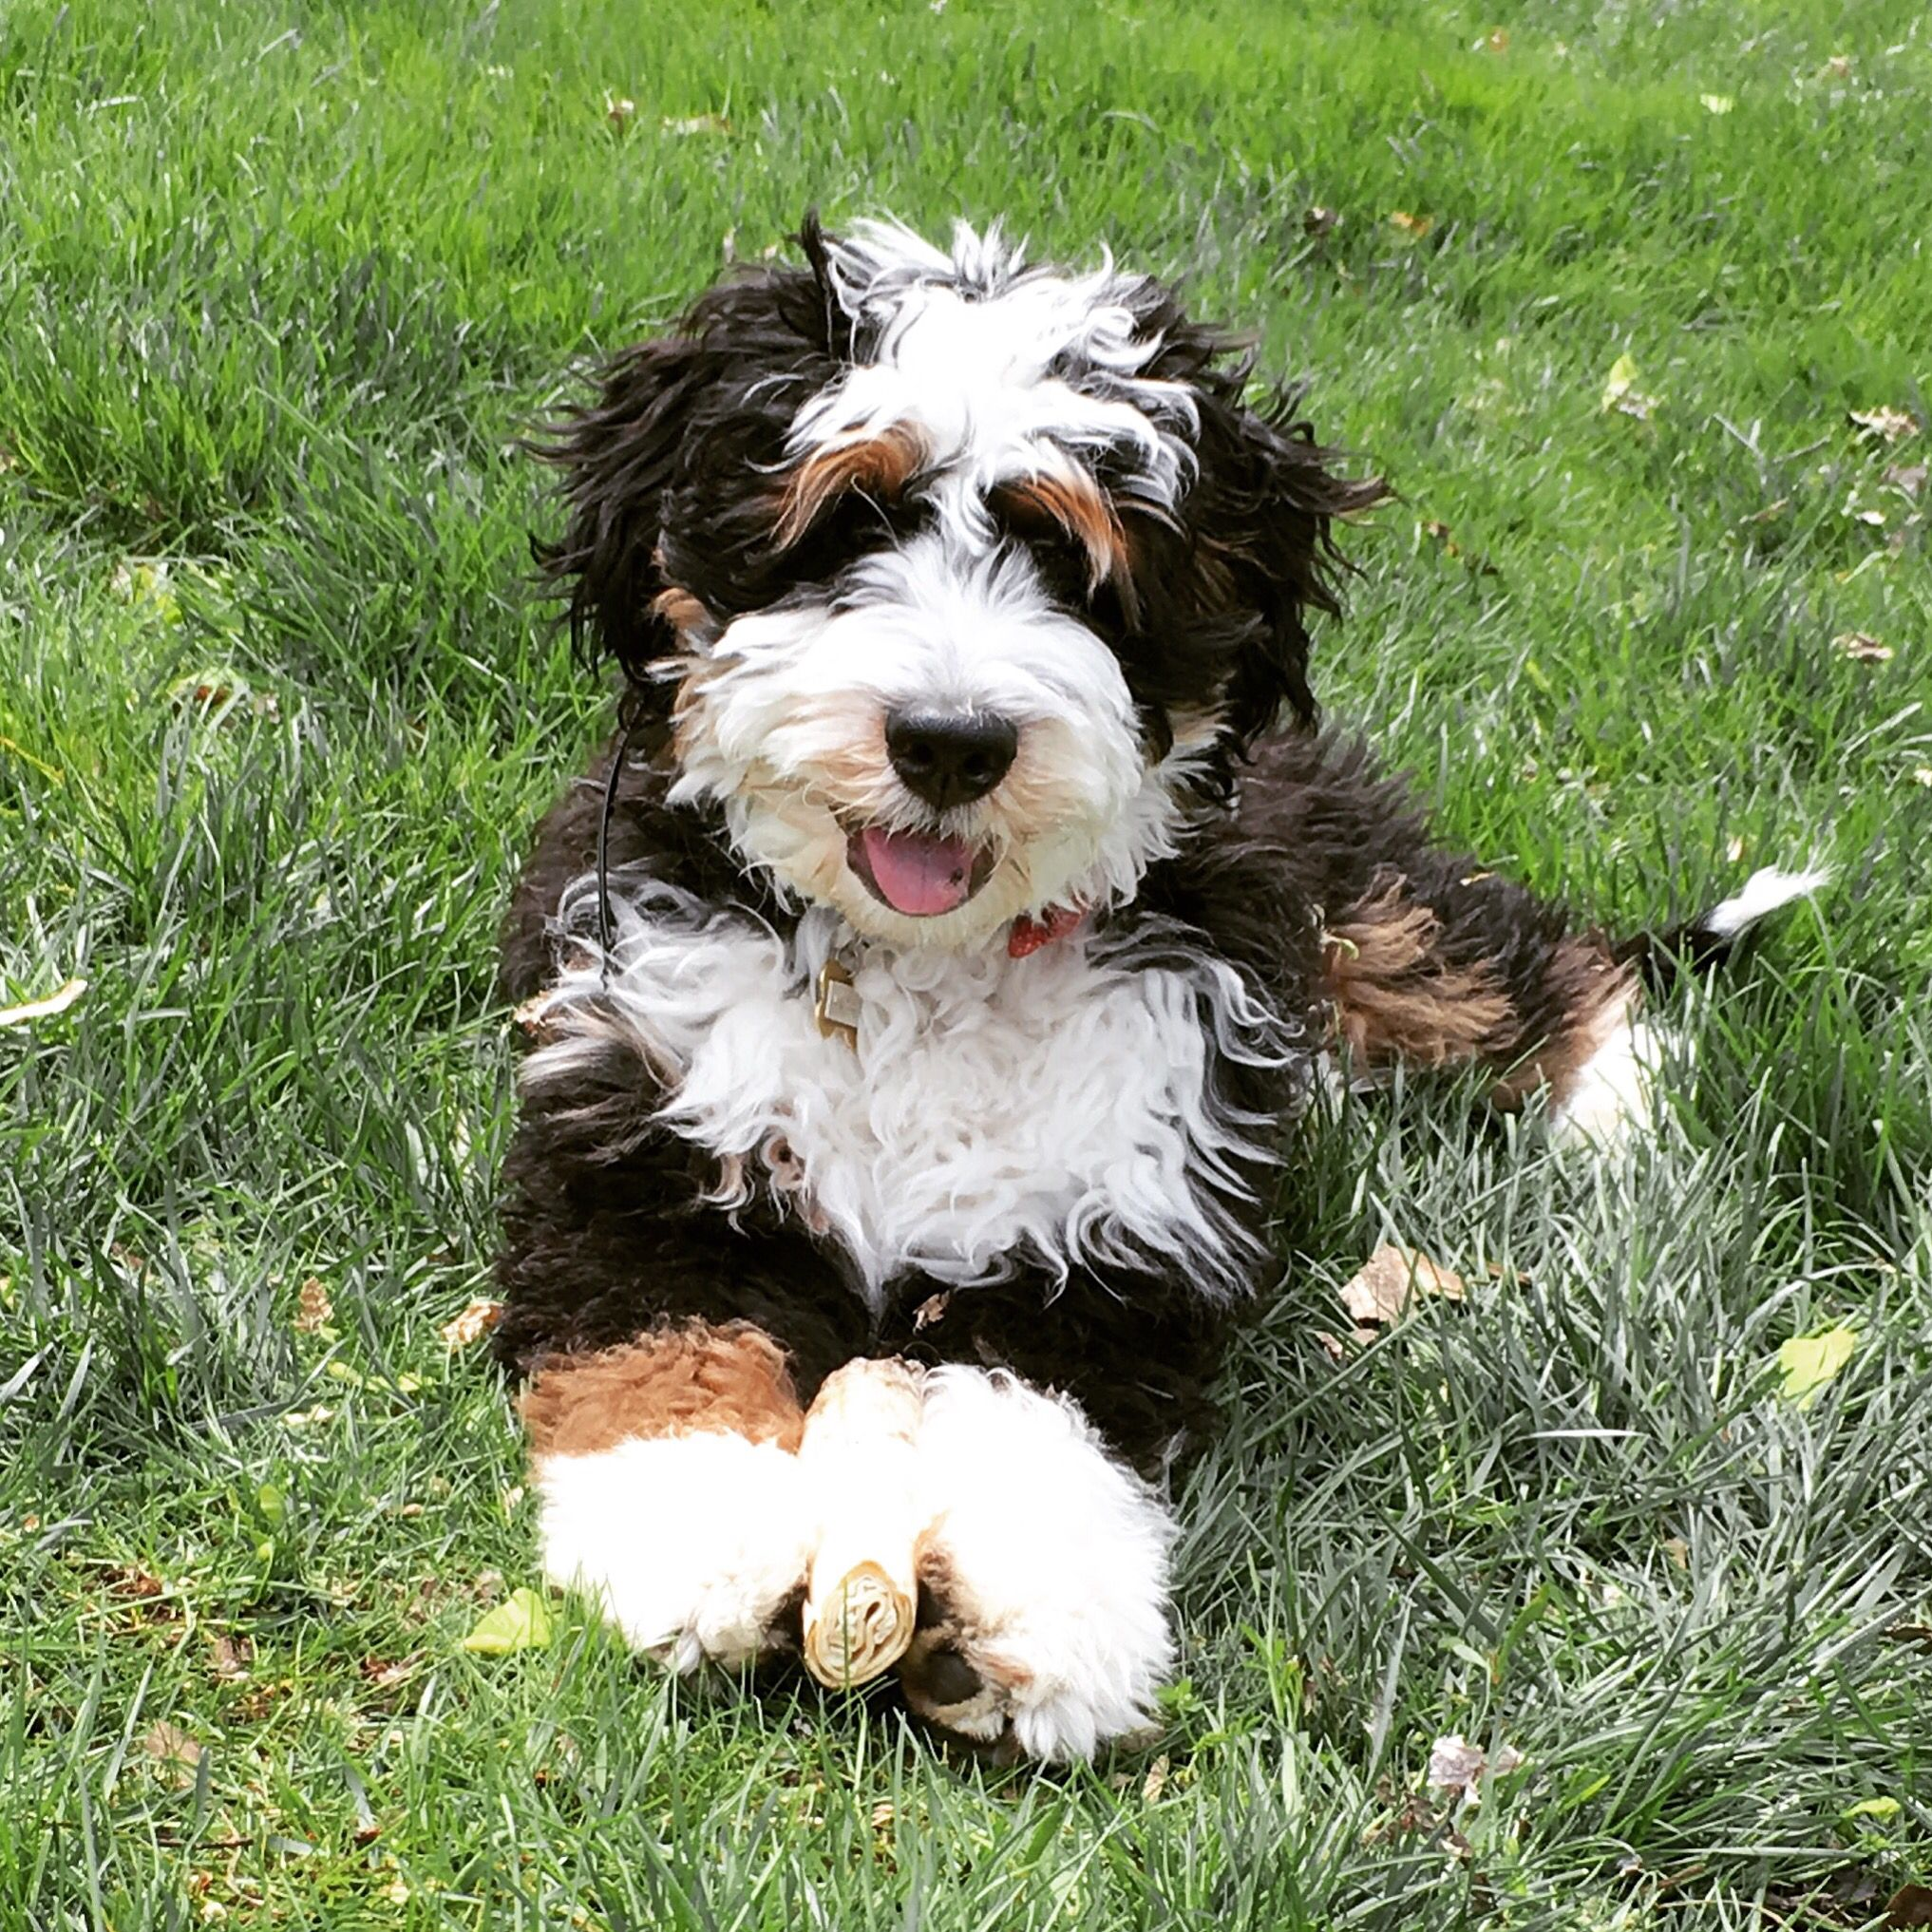 Bernedoodle Puppies For Sale Dog In Illinois - Leroy is a mini bernedoodle puppy from hackman s miniature goldendoodles and bernedoodles 5 months old